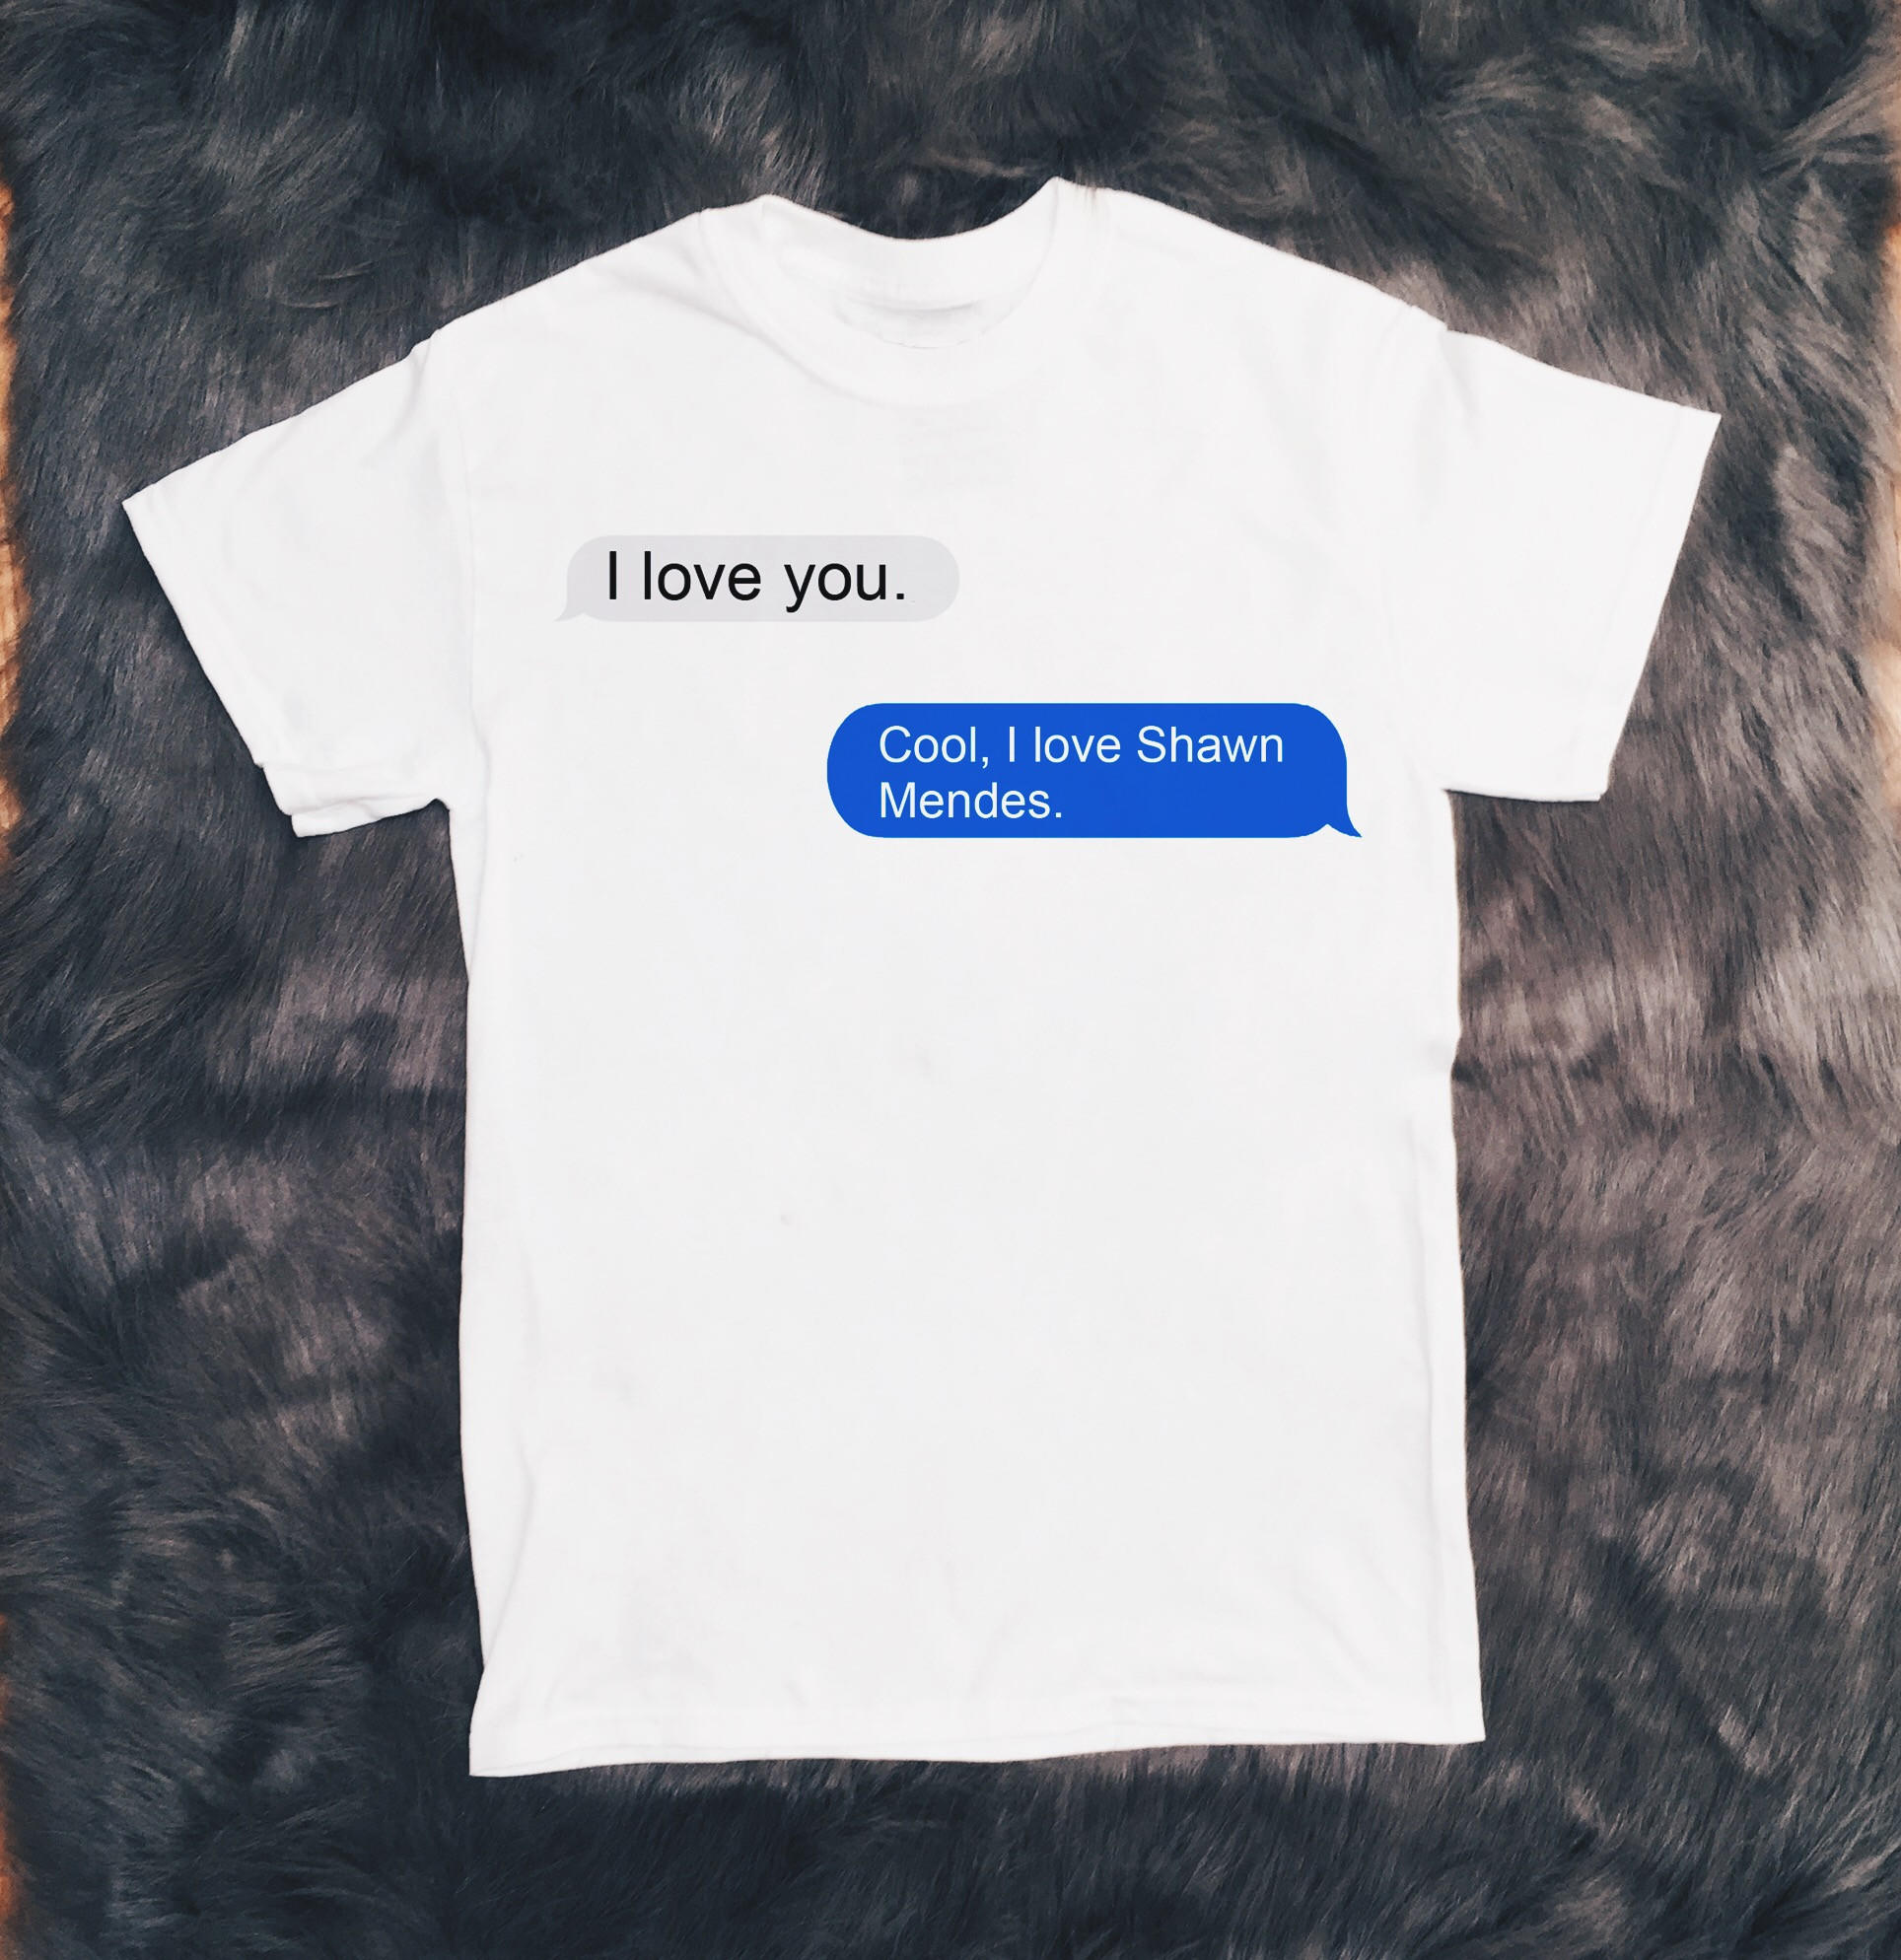 61f35b23 I Love Shawn Mendes iMessage T-Shirt from Infinity Owl